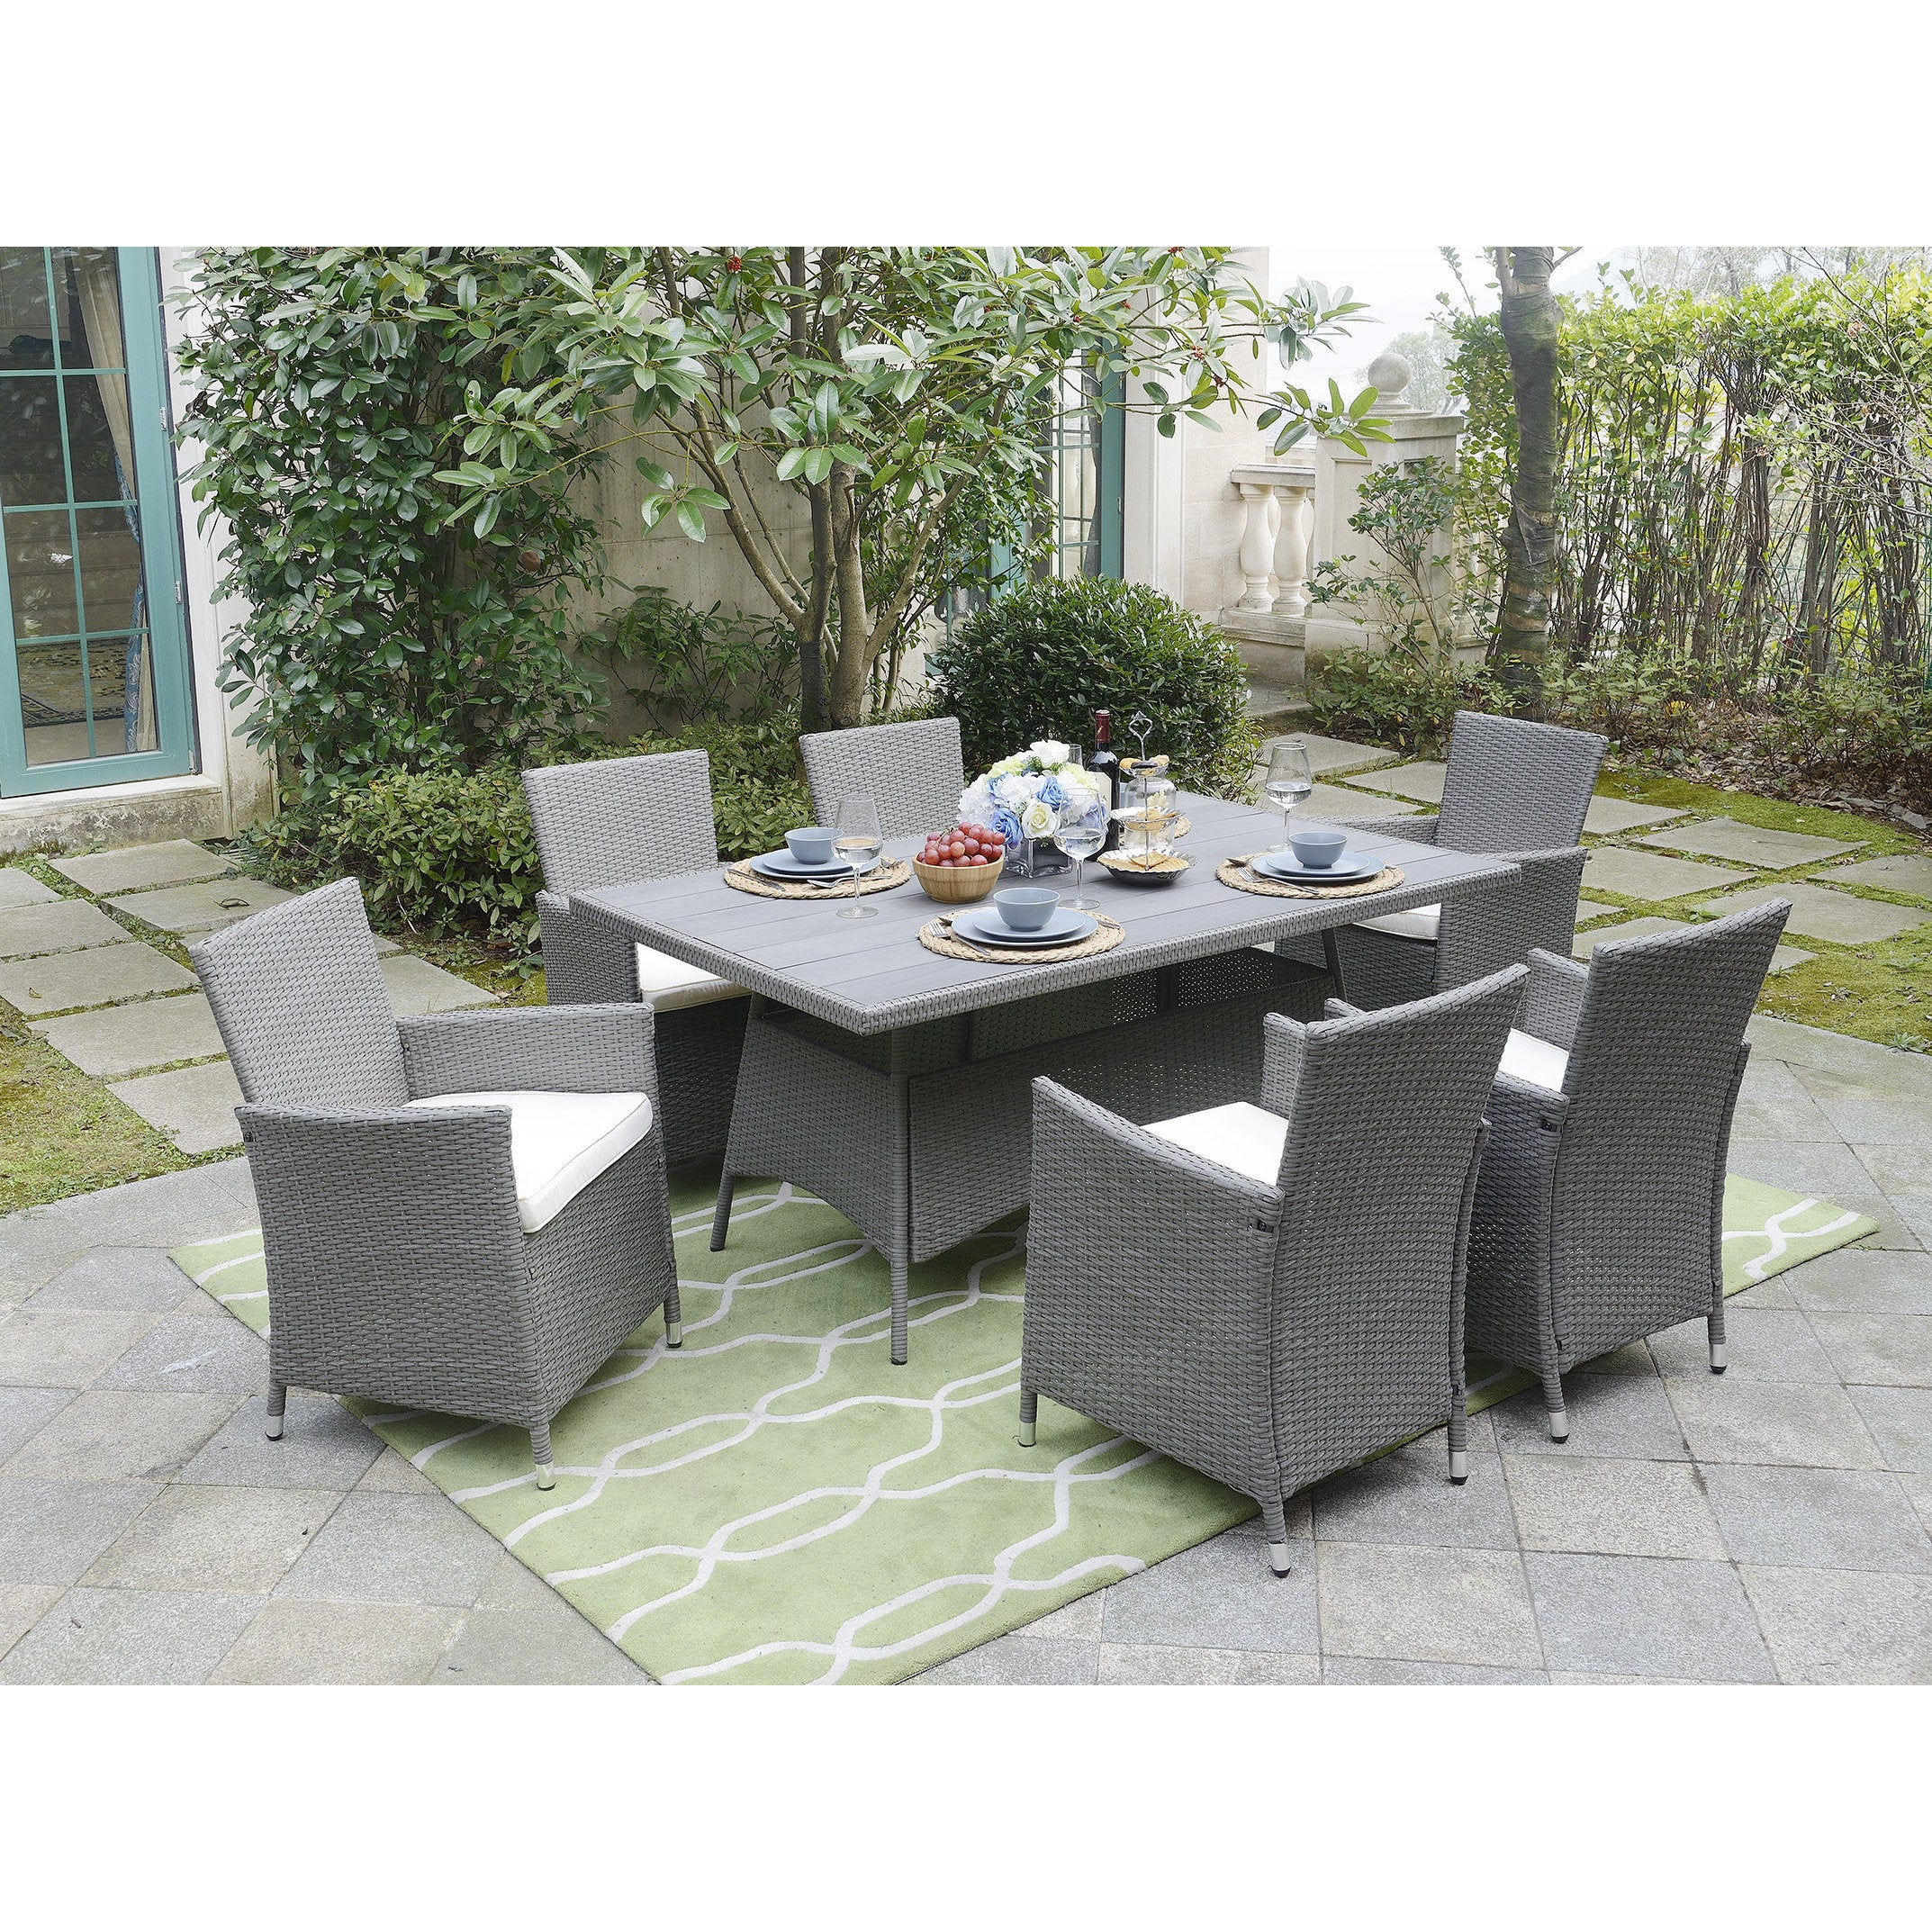 Shop DG Casa Aventura Beige Polywood Steel Table And 6 Chairs Dining Set    On Sale   Free Shipping Today   Overstock.com   14230793